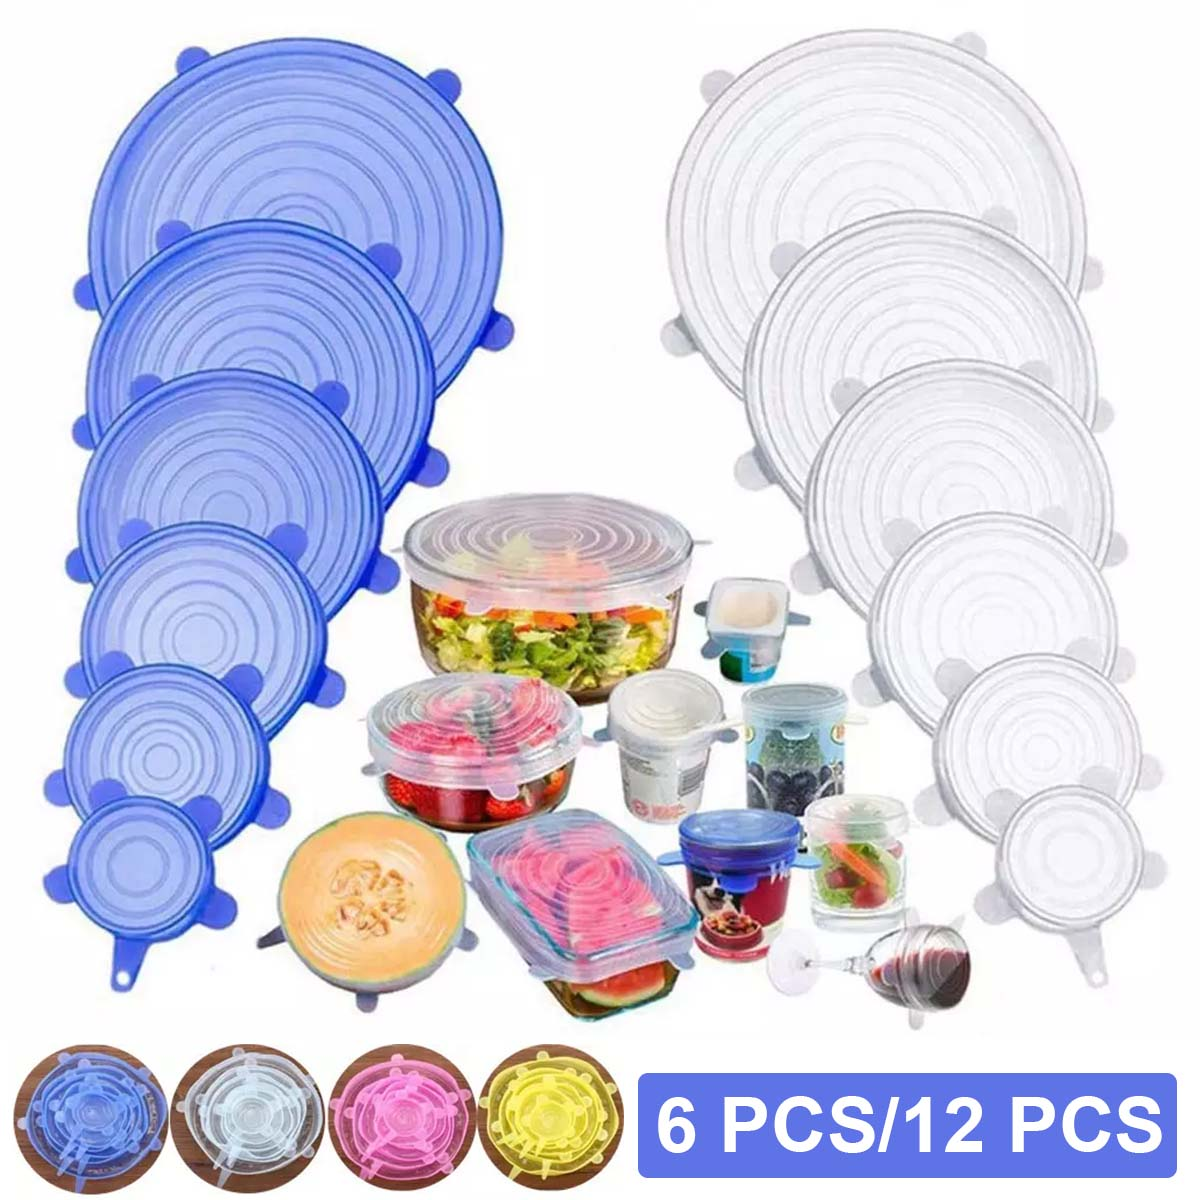 6/12Pcs Silicone Stretch Lids Food Seal Cover Reusable Stretch Wraps Bowl Cover Fresh Keeping Lid Film Kitchen Accessories